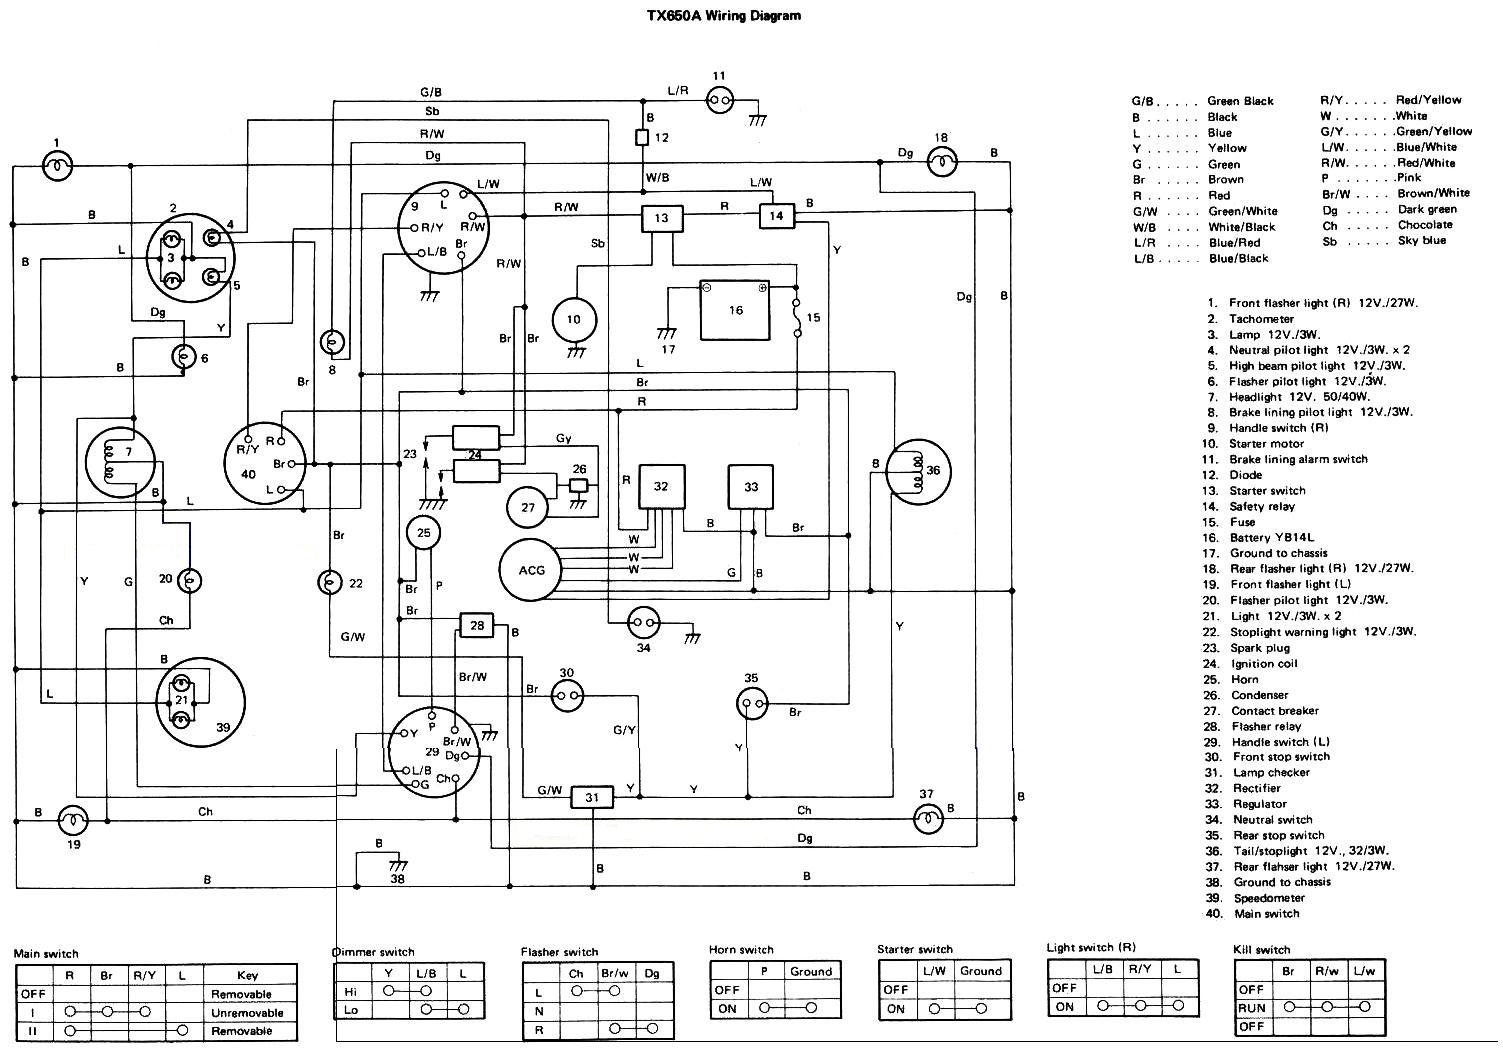 Yamaha Xs 750 Wiring Diagram Free For You Compass 1977 650 Diagrams Scematic Rh 16 Jessicadonath De R7 1978